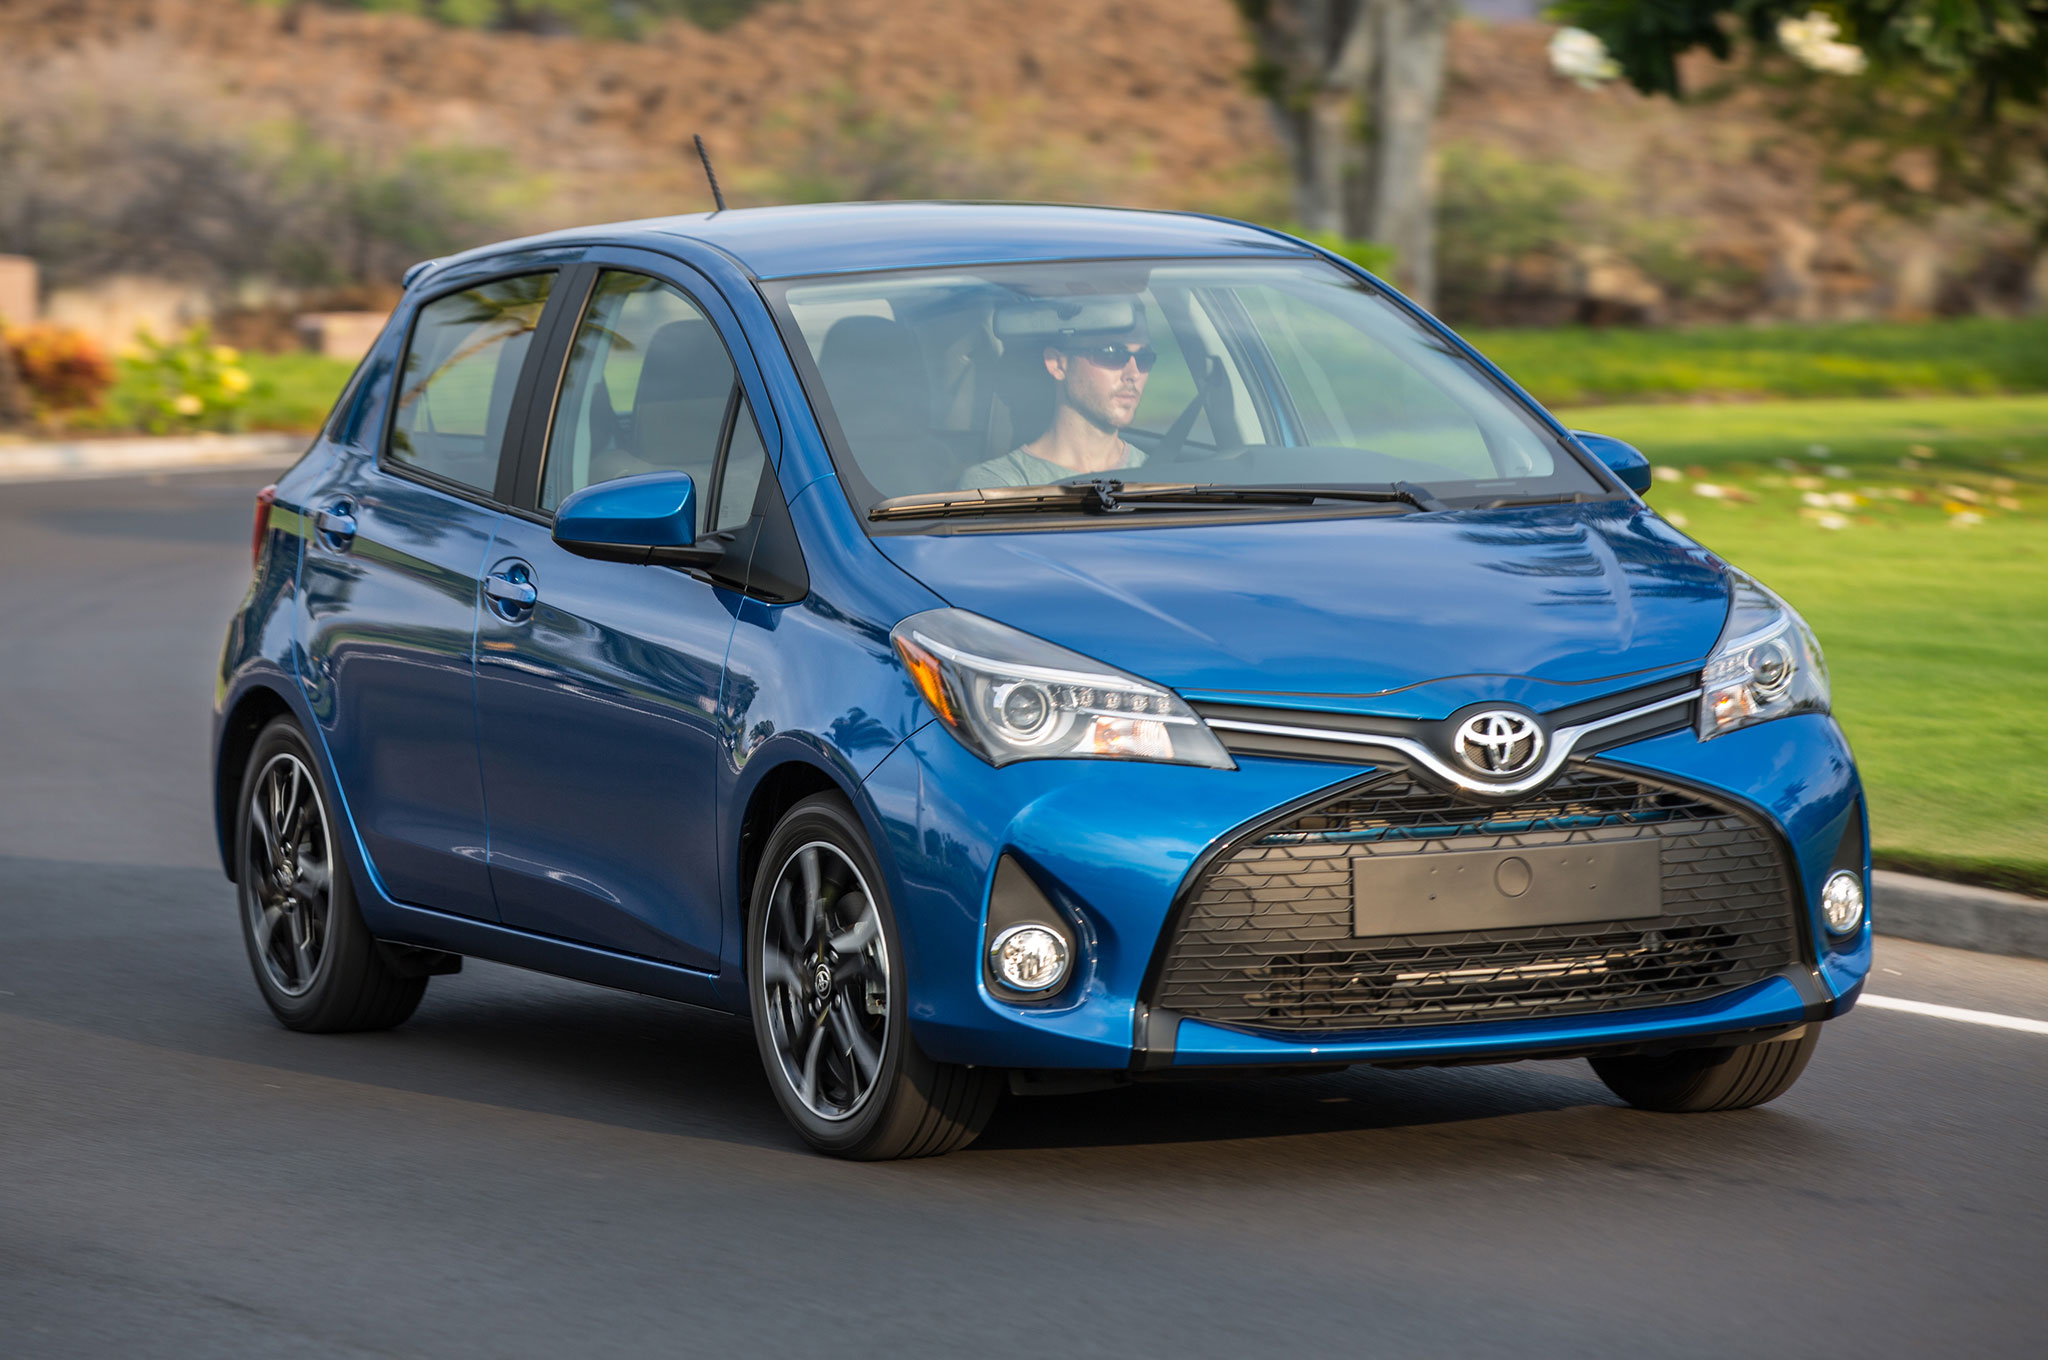 2017 Toyota Yaris Se Front Three Quarter View In Motion 1